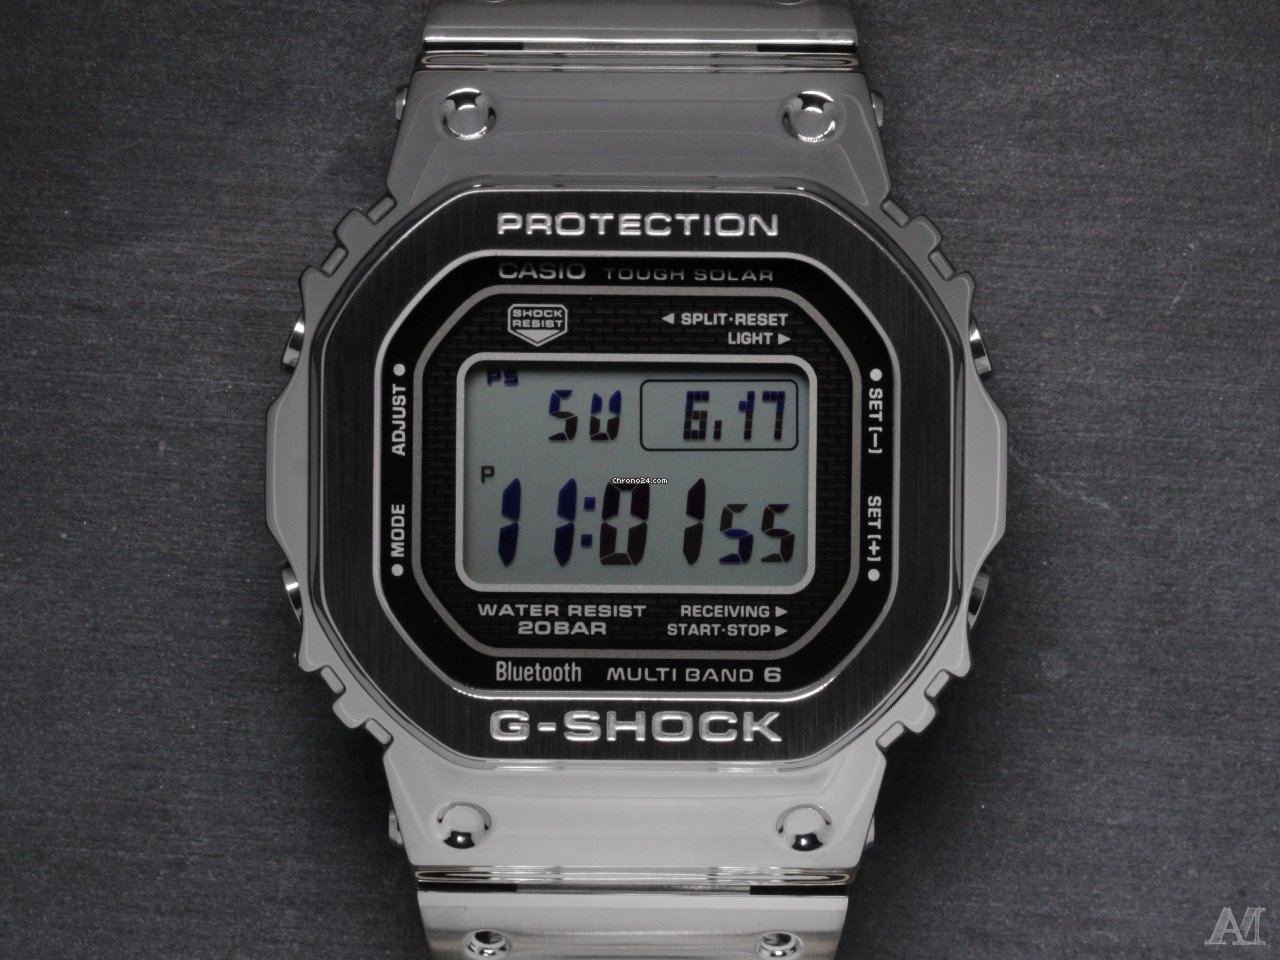 cf12c32eede Casio G-Shock Casio GMW-B5000D-1ER 35th Anniversary Full Metal for  688 for  sale from a Private Seller on Chrono24